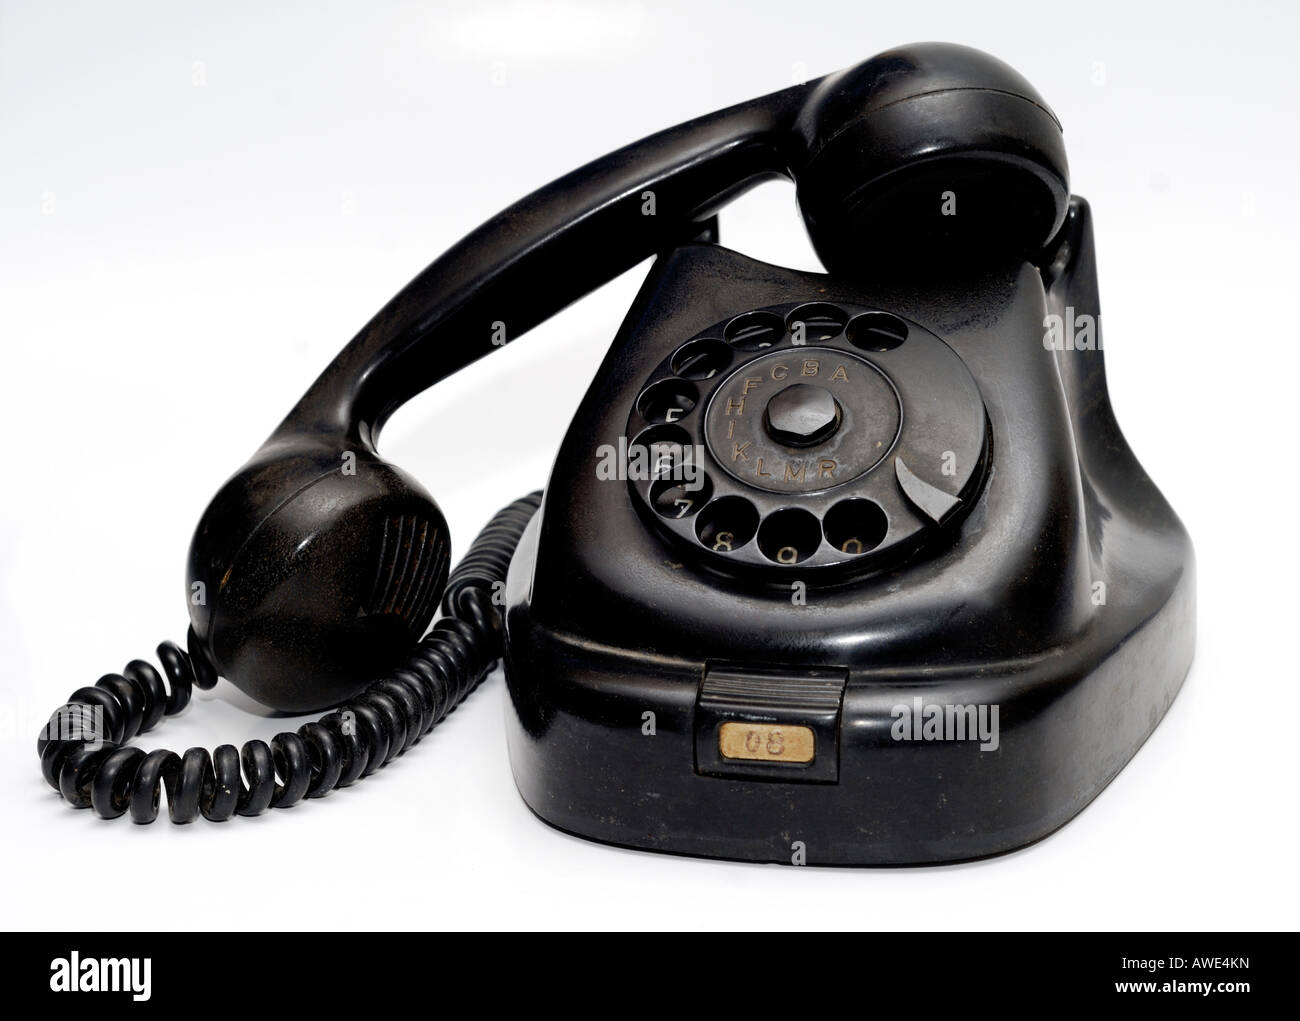 old rotary phone hook up celebs go dating nadia and eden